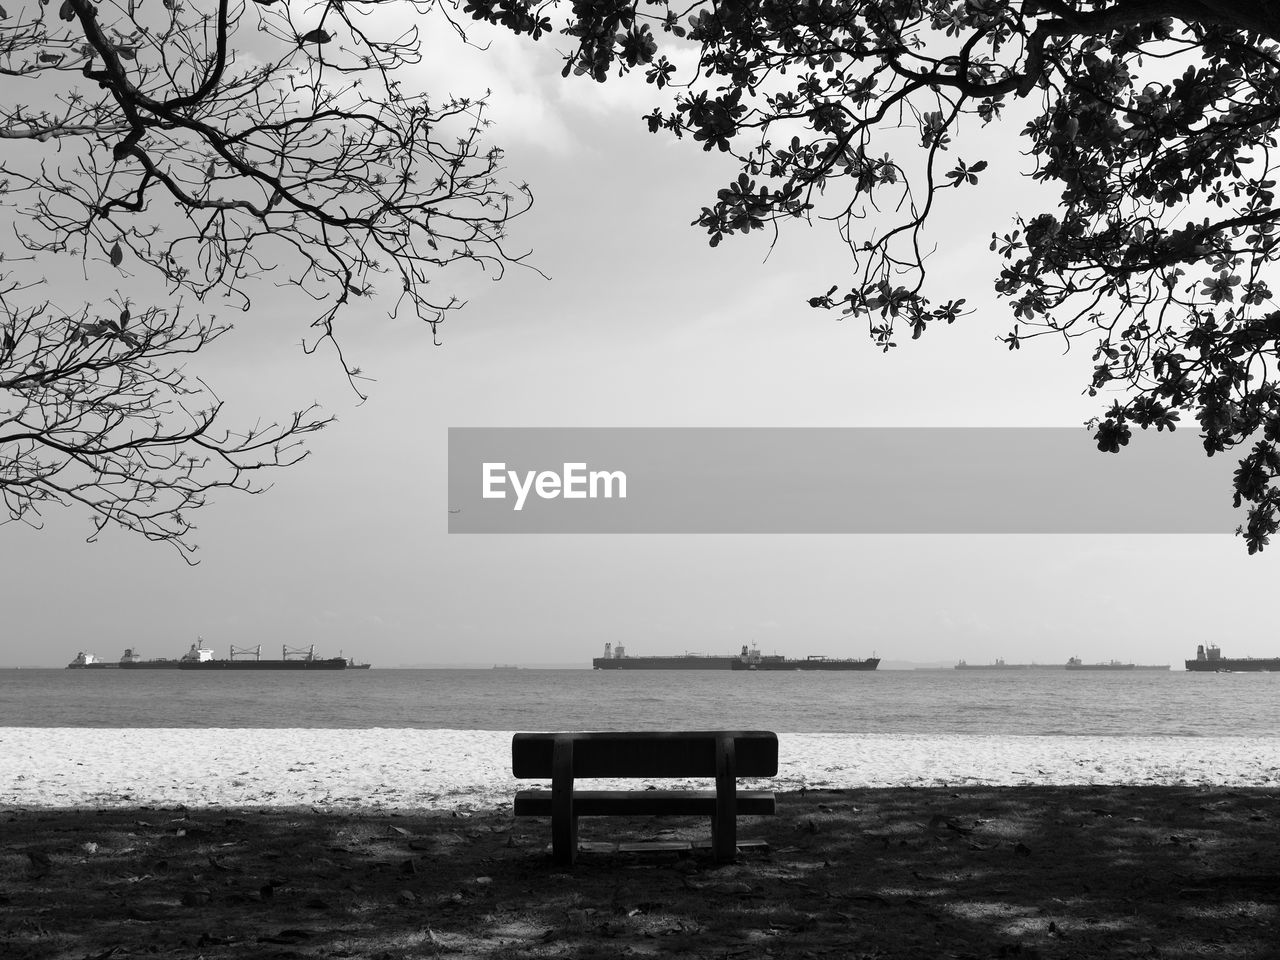 water, seat, sky, bench, tree, tranquility, beauty in nature, nature, tranquil scene, plant, scenics - nature, empty, day, absence, beach, park bench, no people, outdoors, land